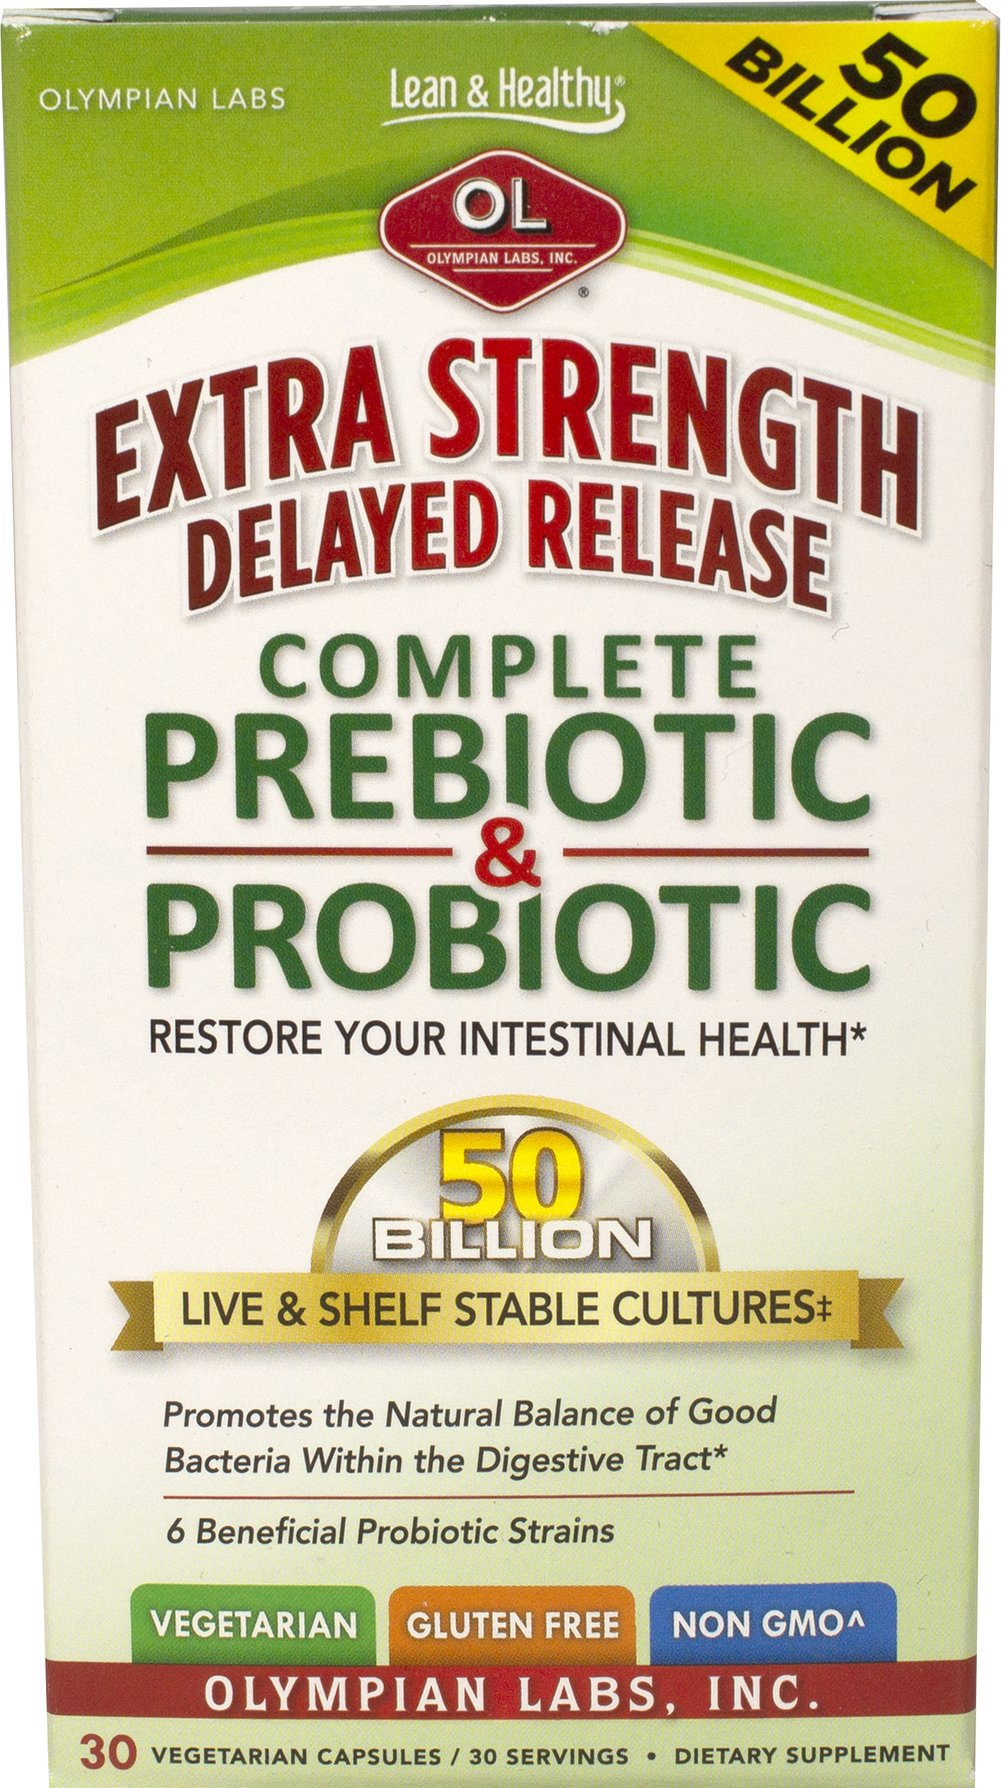 Extra Strength Complete Probiotic & Prebiotic 50 Billion